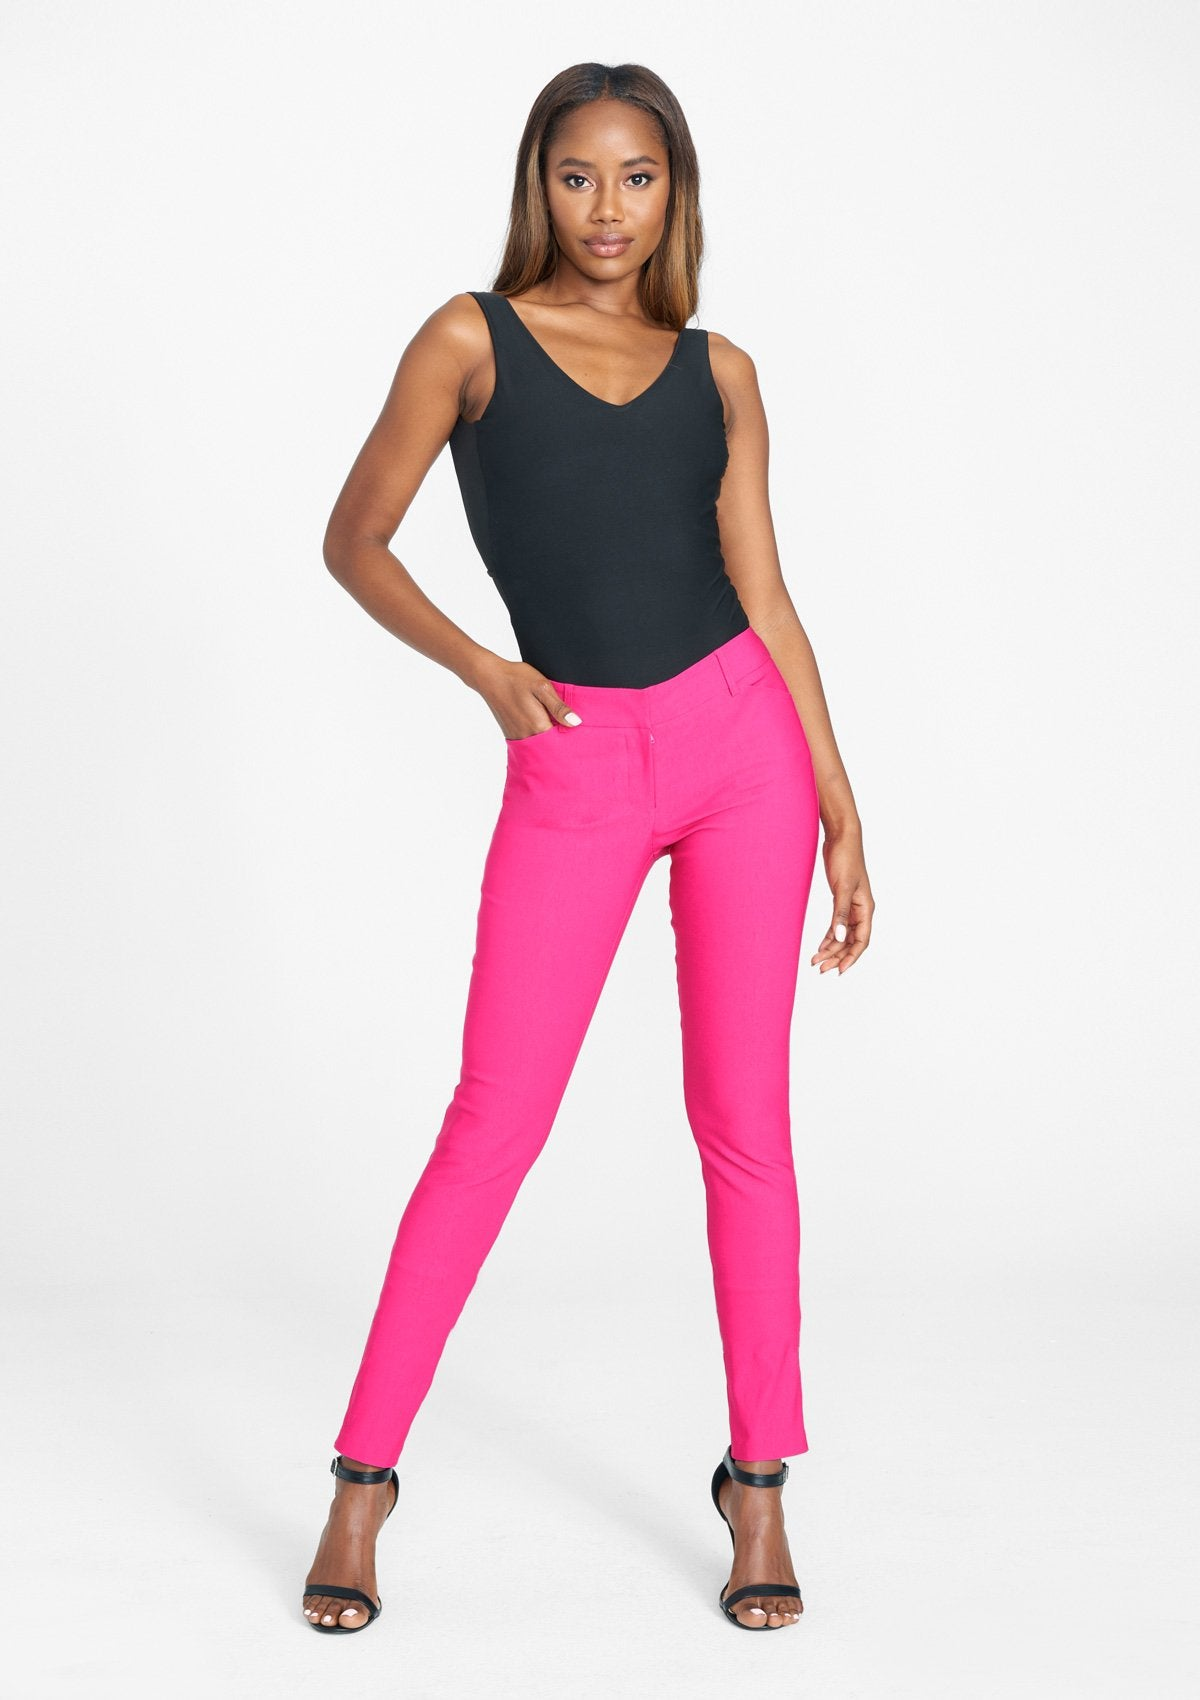 Alloy Apparel Tall Julia Dressy Skinny Pants for Women in Beetroot Size 2XL length 37   Nylon